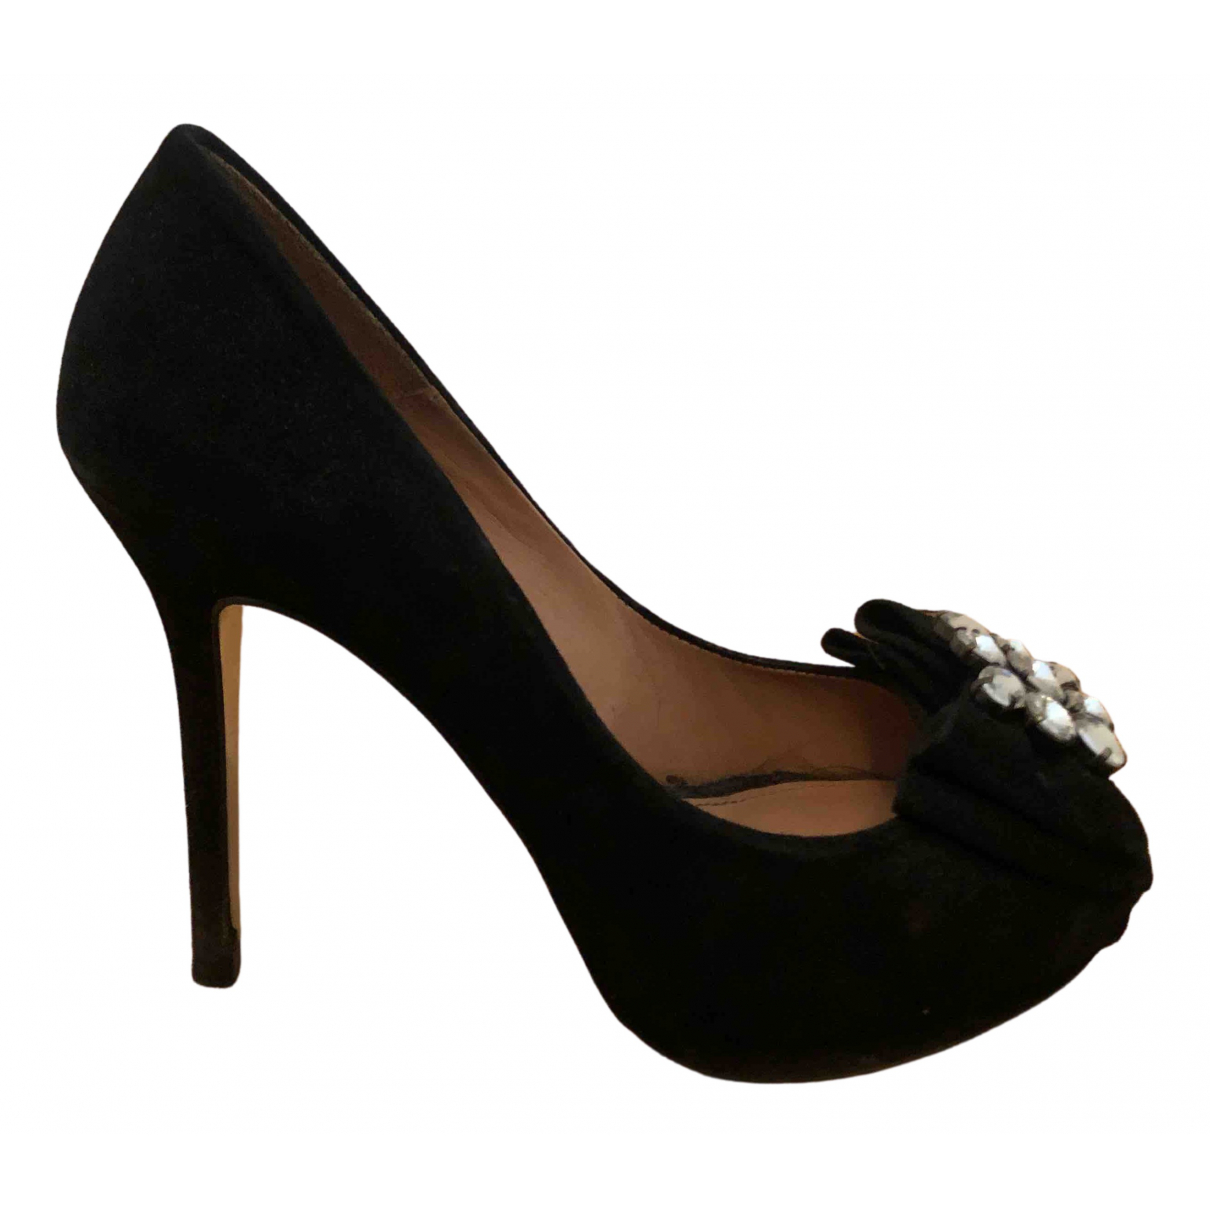 Uterque N Black Suede Heels for Women 38 EU